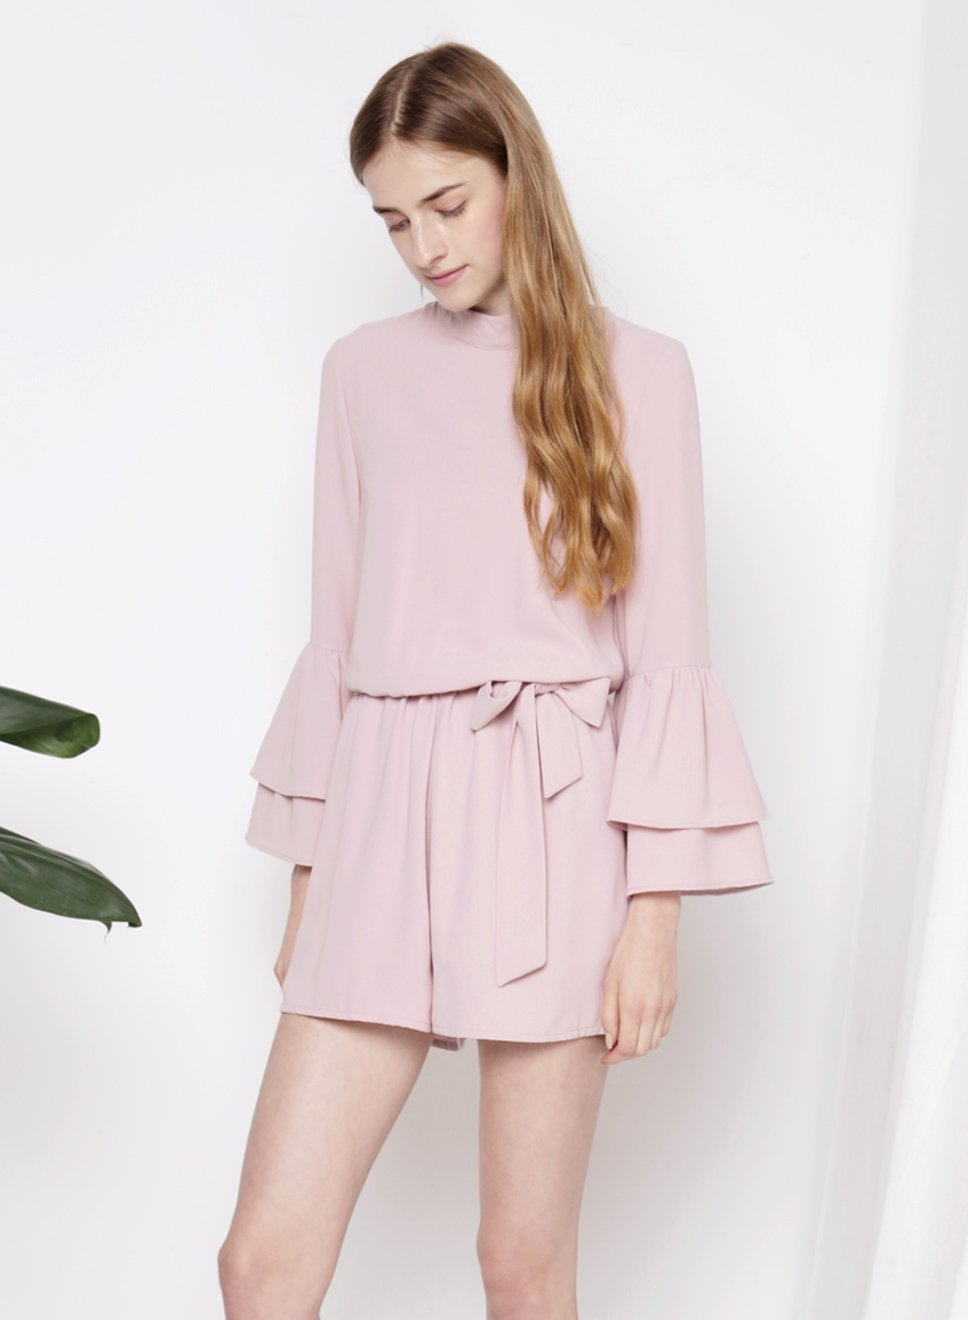 STELLAR Double Tier Ruffle Sleeves Romper (Mauve) - And Well Dressed